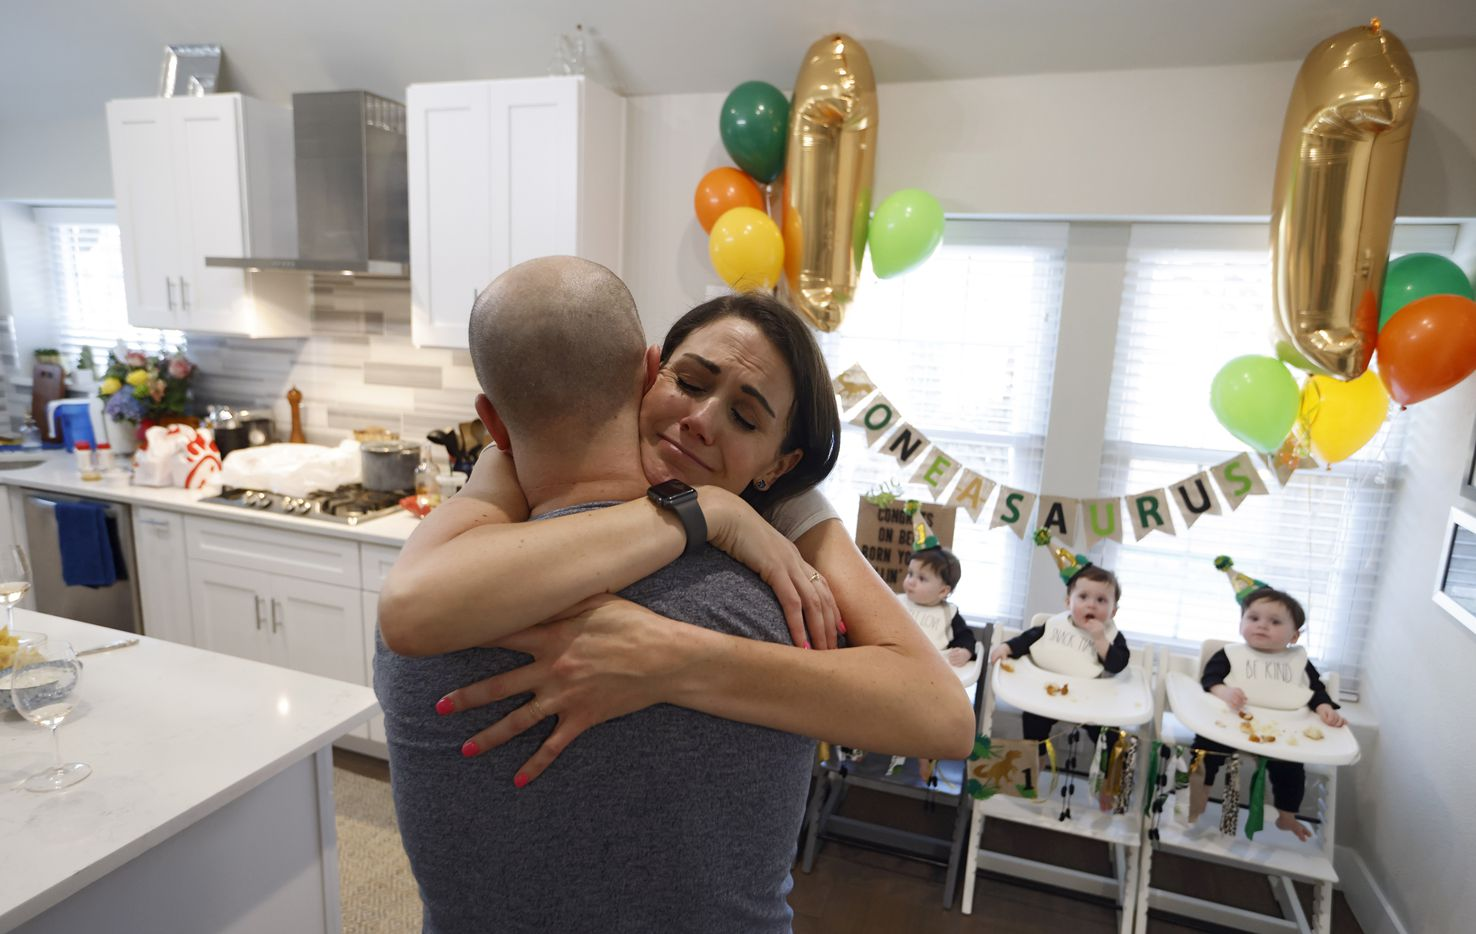 Jenny and Chris Marr hug each other as their sons, Harrison, Hardy, Henry, Hudson Marr eat dinner during their one year birthday party at their home on Monday, March 15, 2021in Grapevine, Texas.